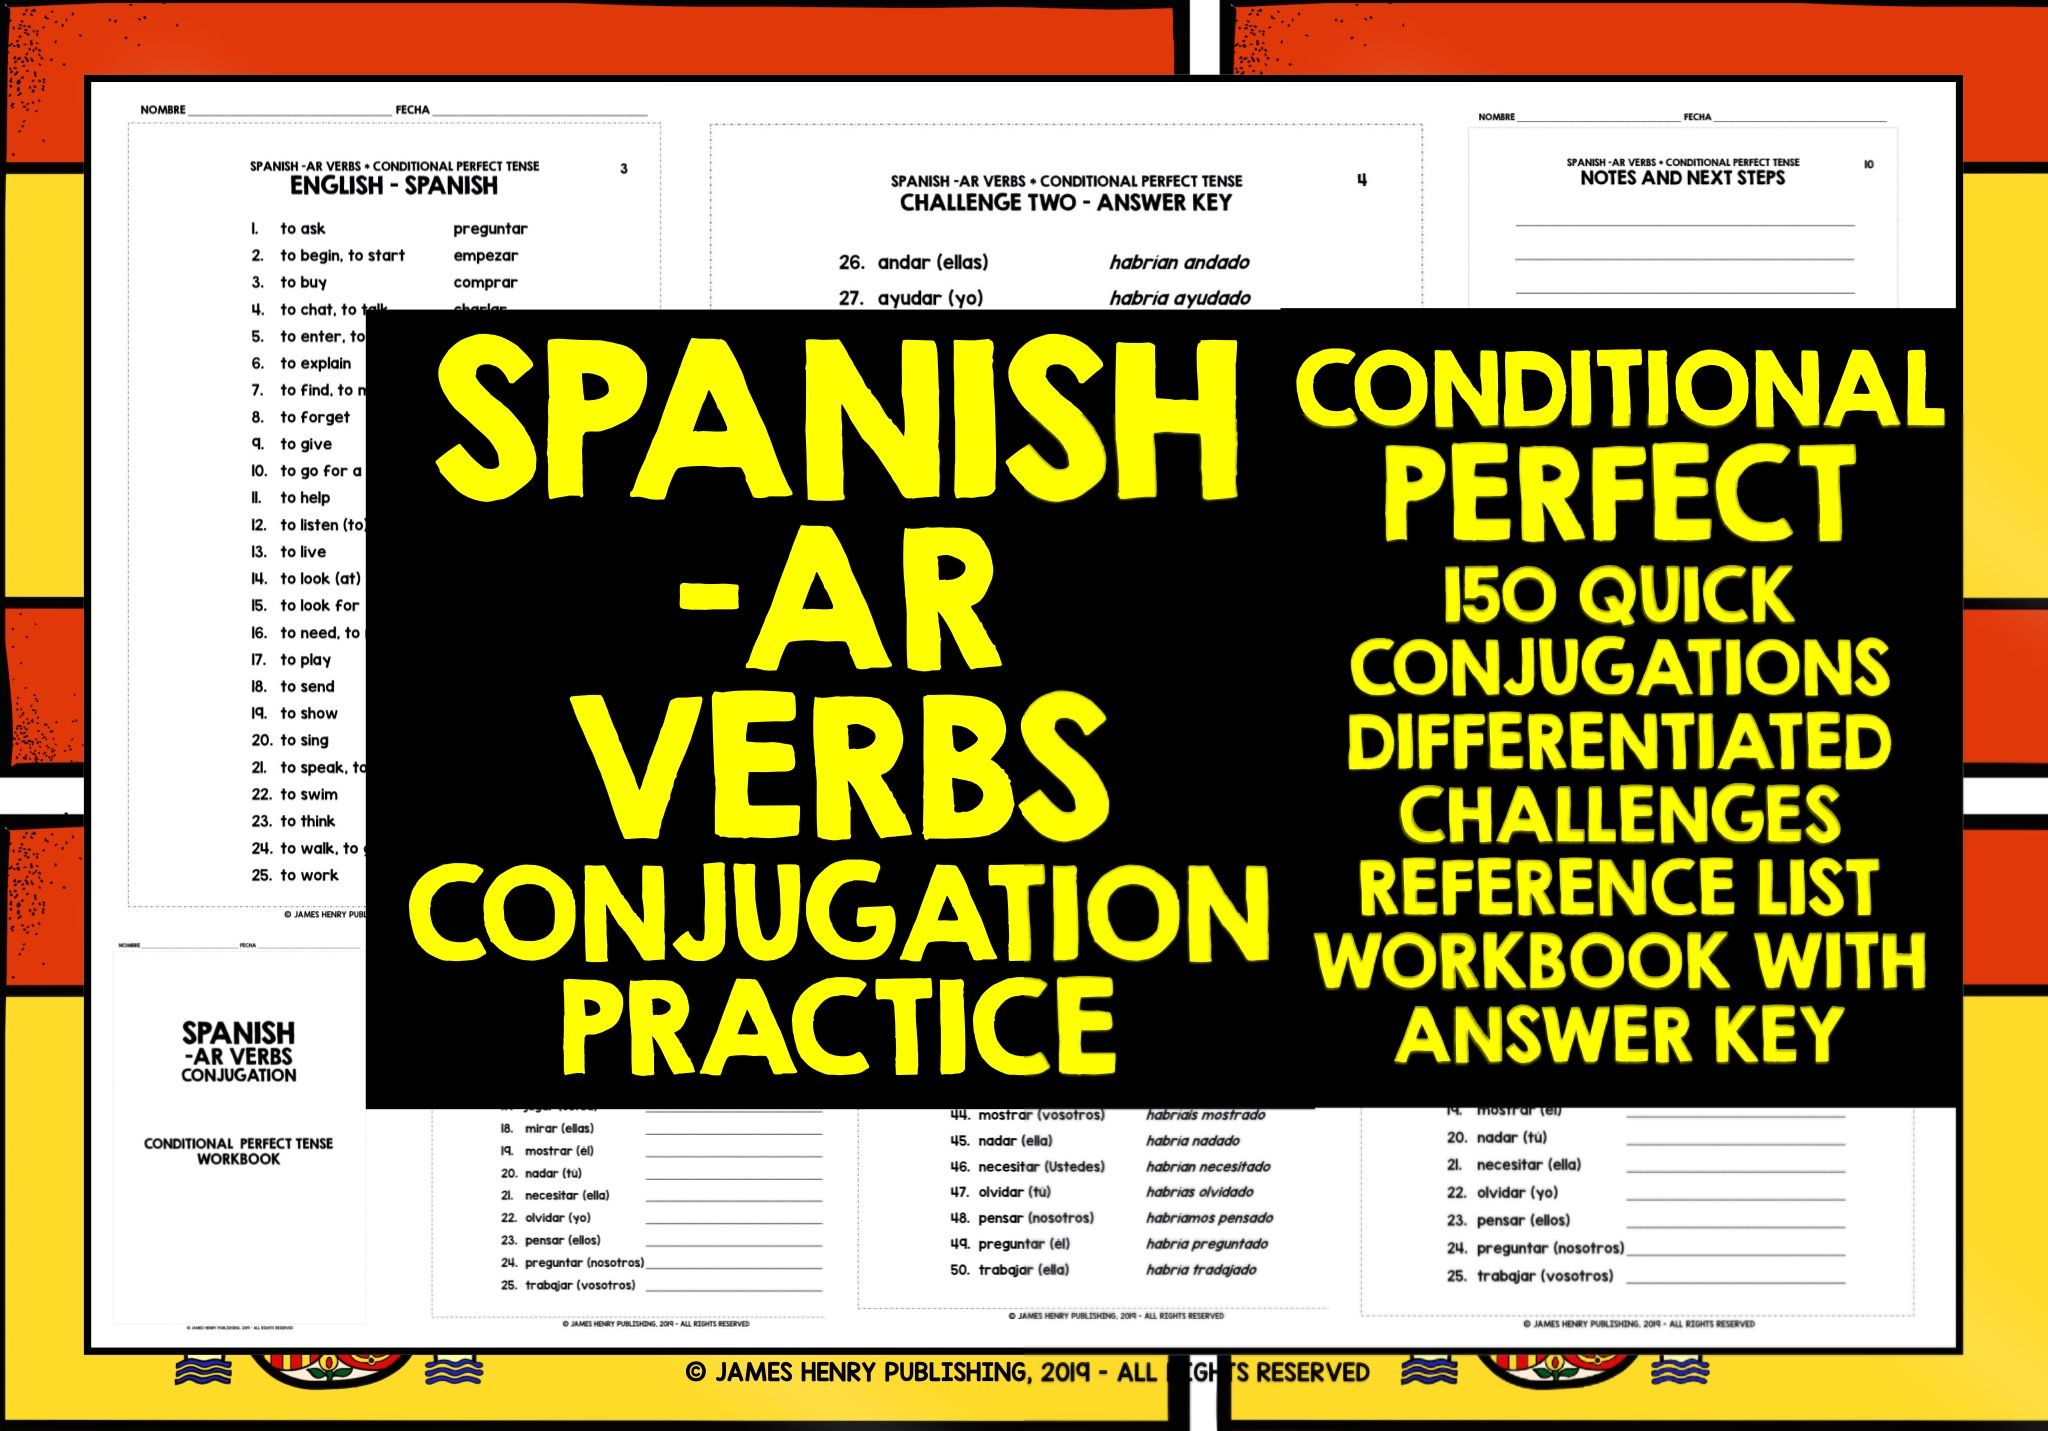 Spanish Ar Verbs Alevel Conditional Perfect Conjugation Practice Teaching Resources Conjugation Practice Spanish Conjugation Practice Spanish Verb Conjugation [ 1431 x 2048 Pixel ]